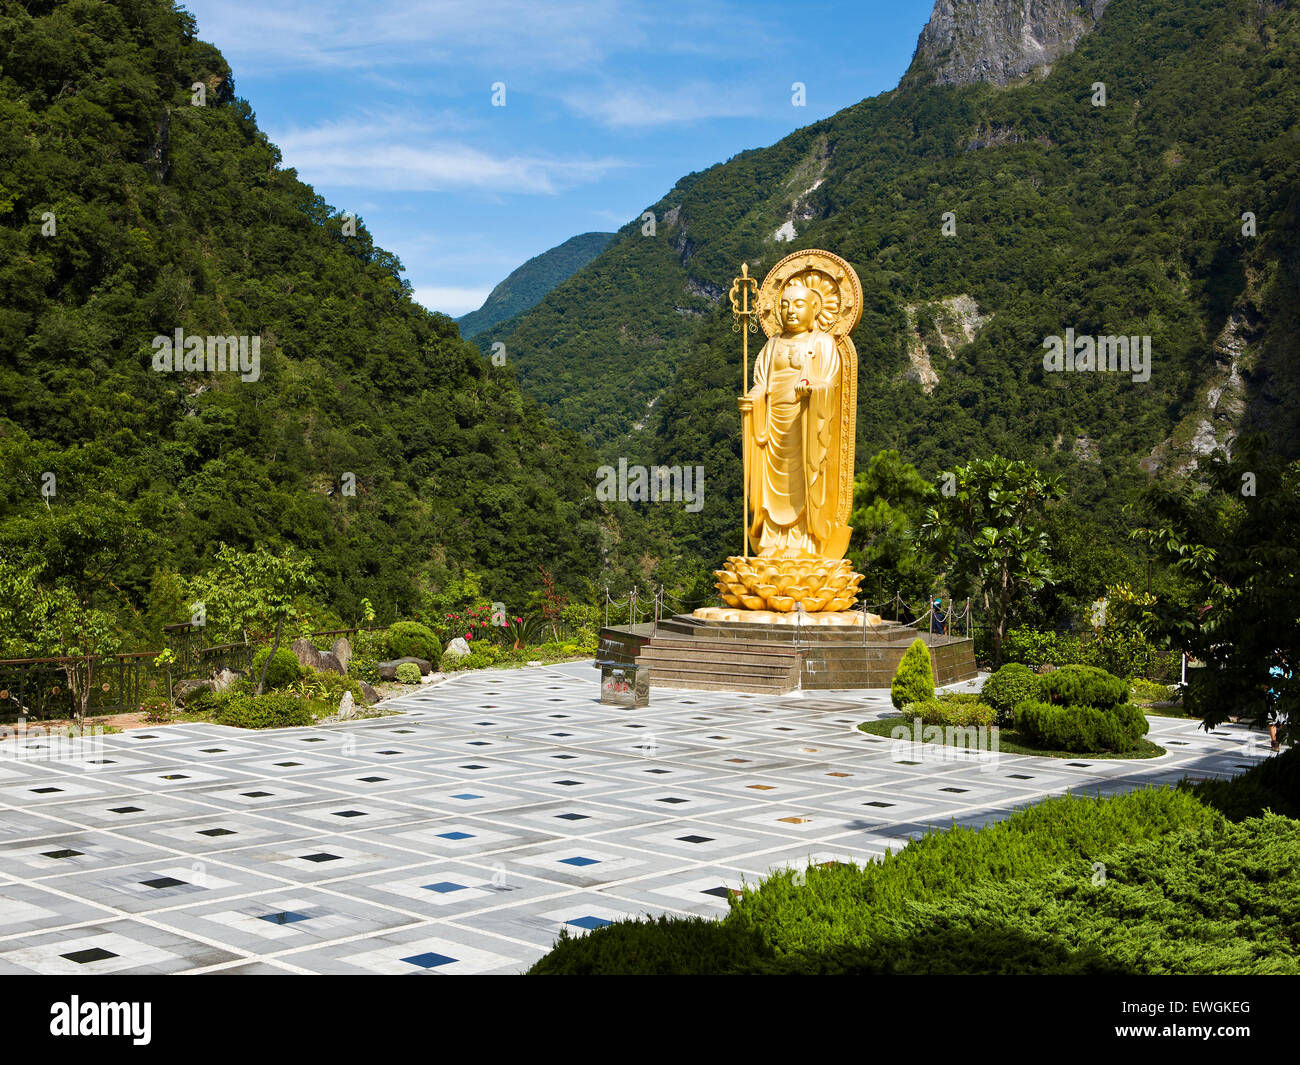 Ti Tsang Statue at the Hsiang-te Temple in the Taroko Gorge Taiwan - Stock Image